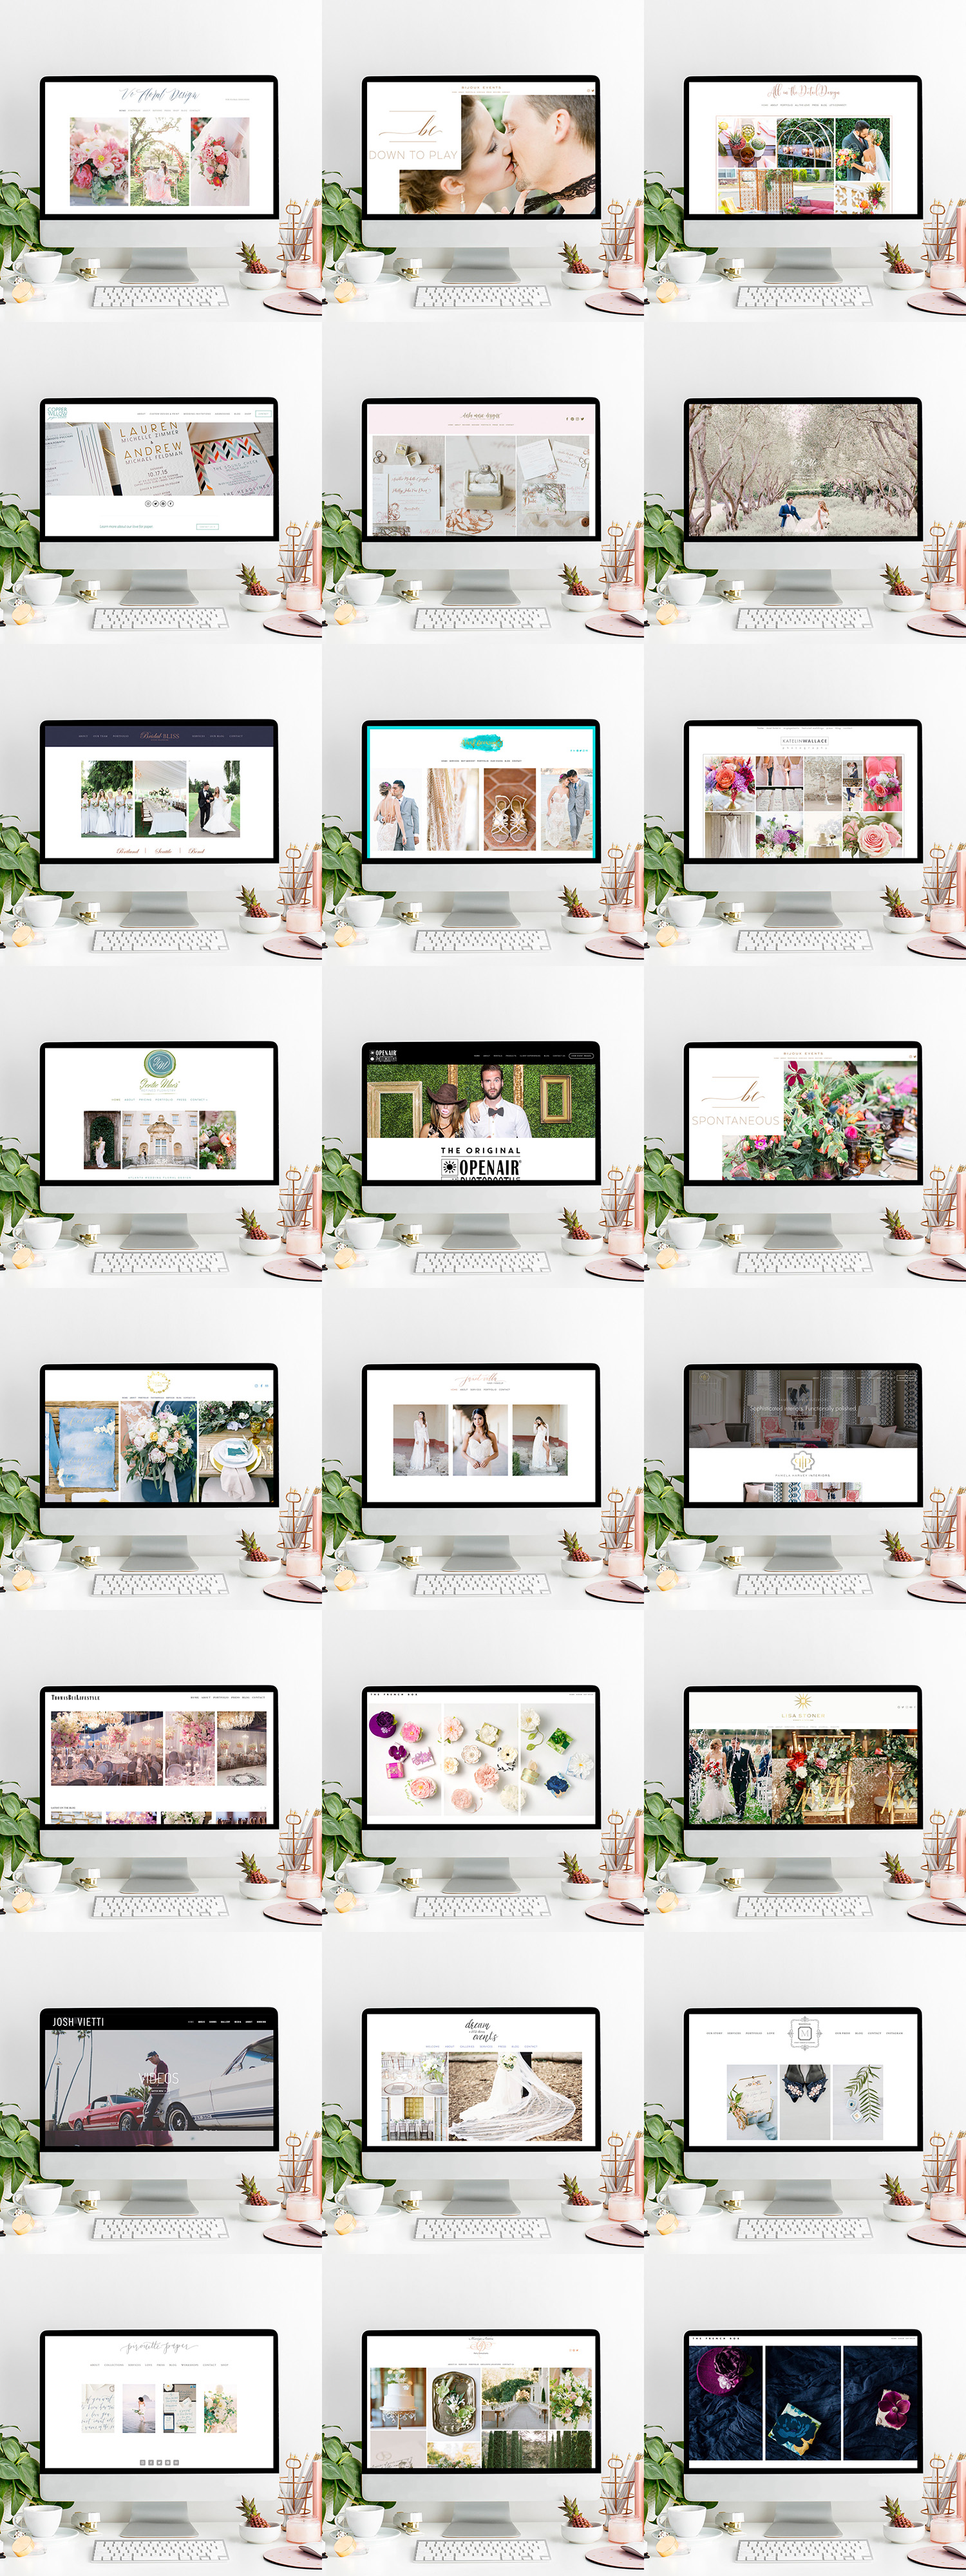 theeditorstouch.com | Squarespace Website Designer for Wedding Professionals | The Editor's Touch